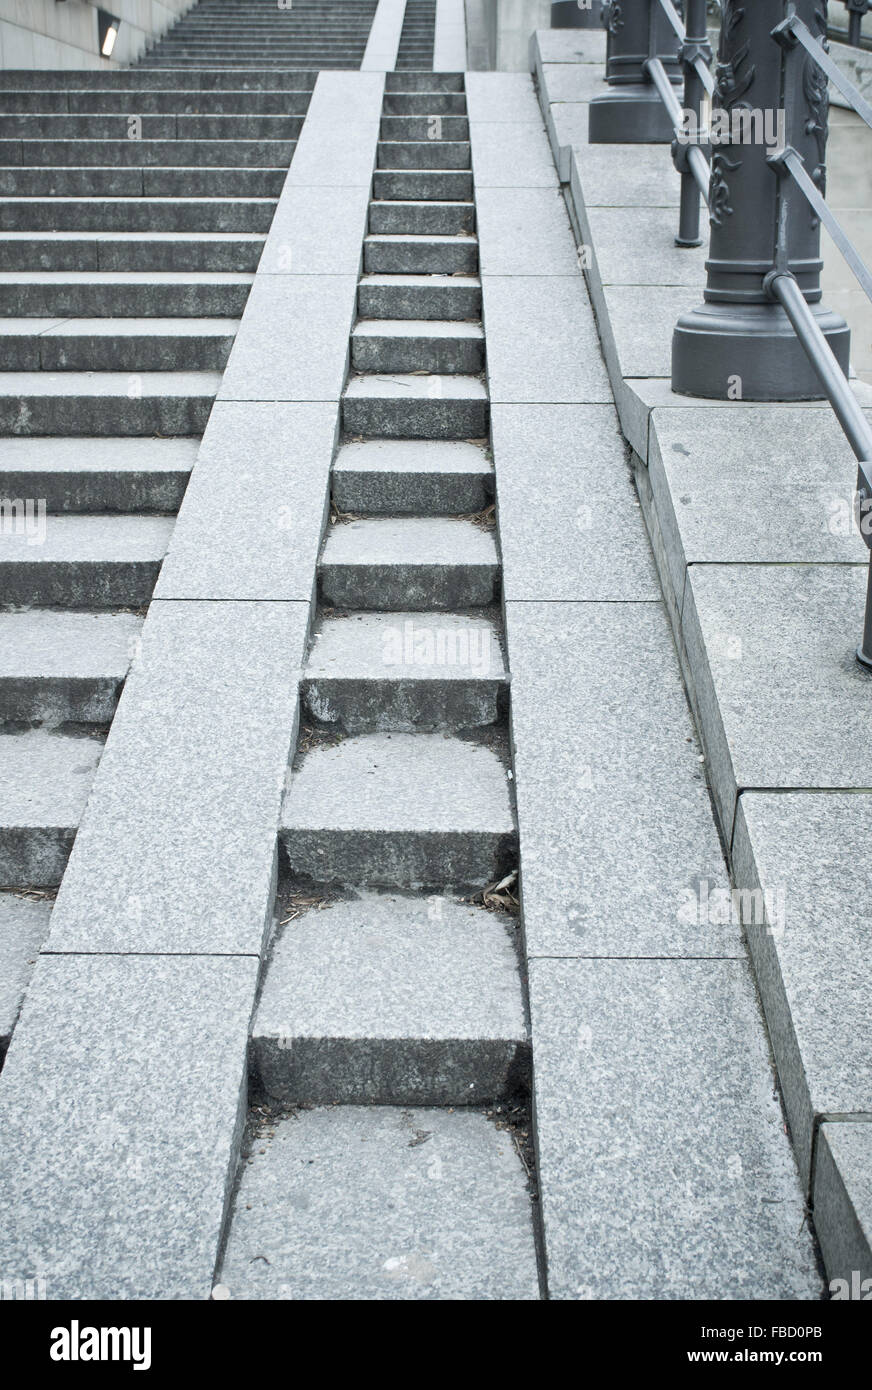 A Set Of Stone Steps In Germany With A Ramp For Wheelchairs And Pushchairs